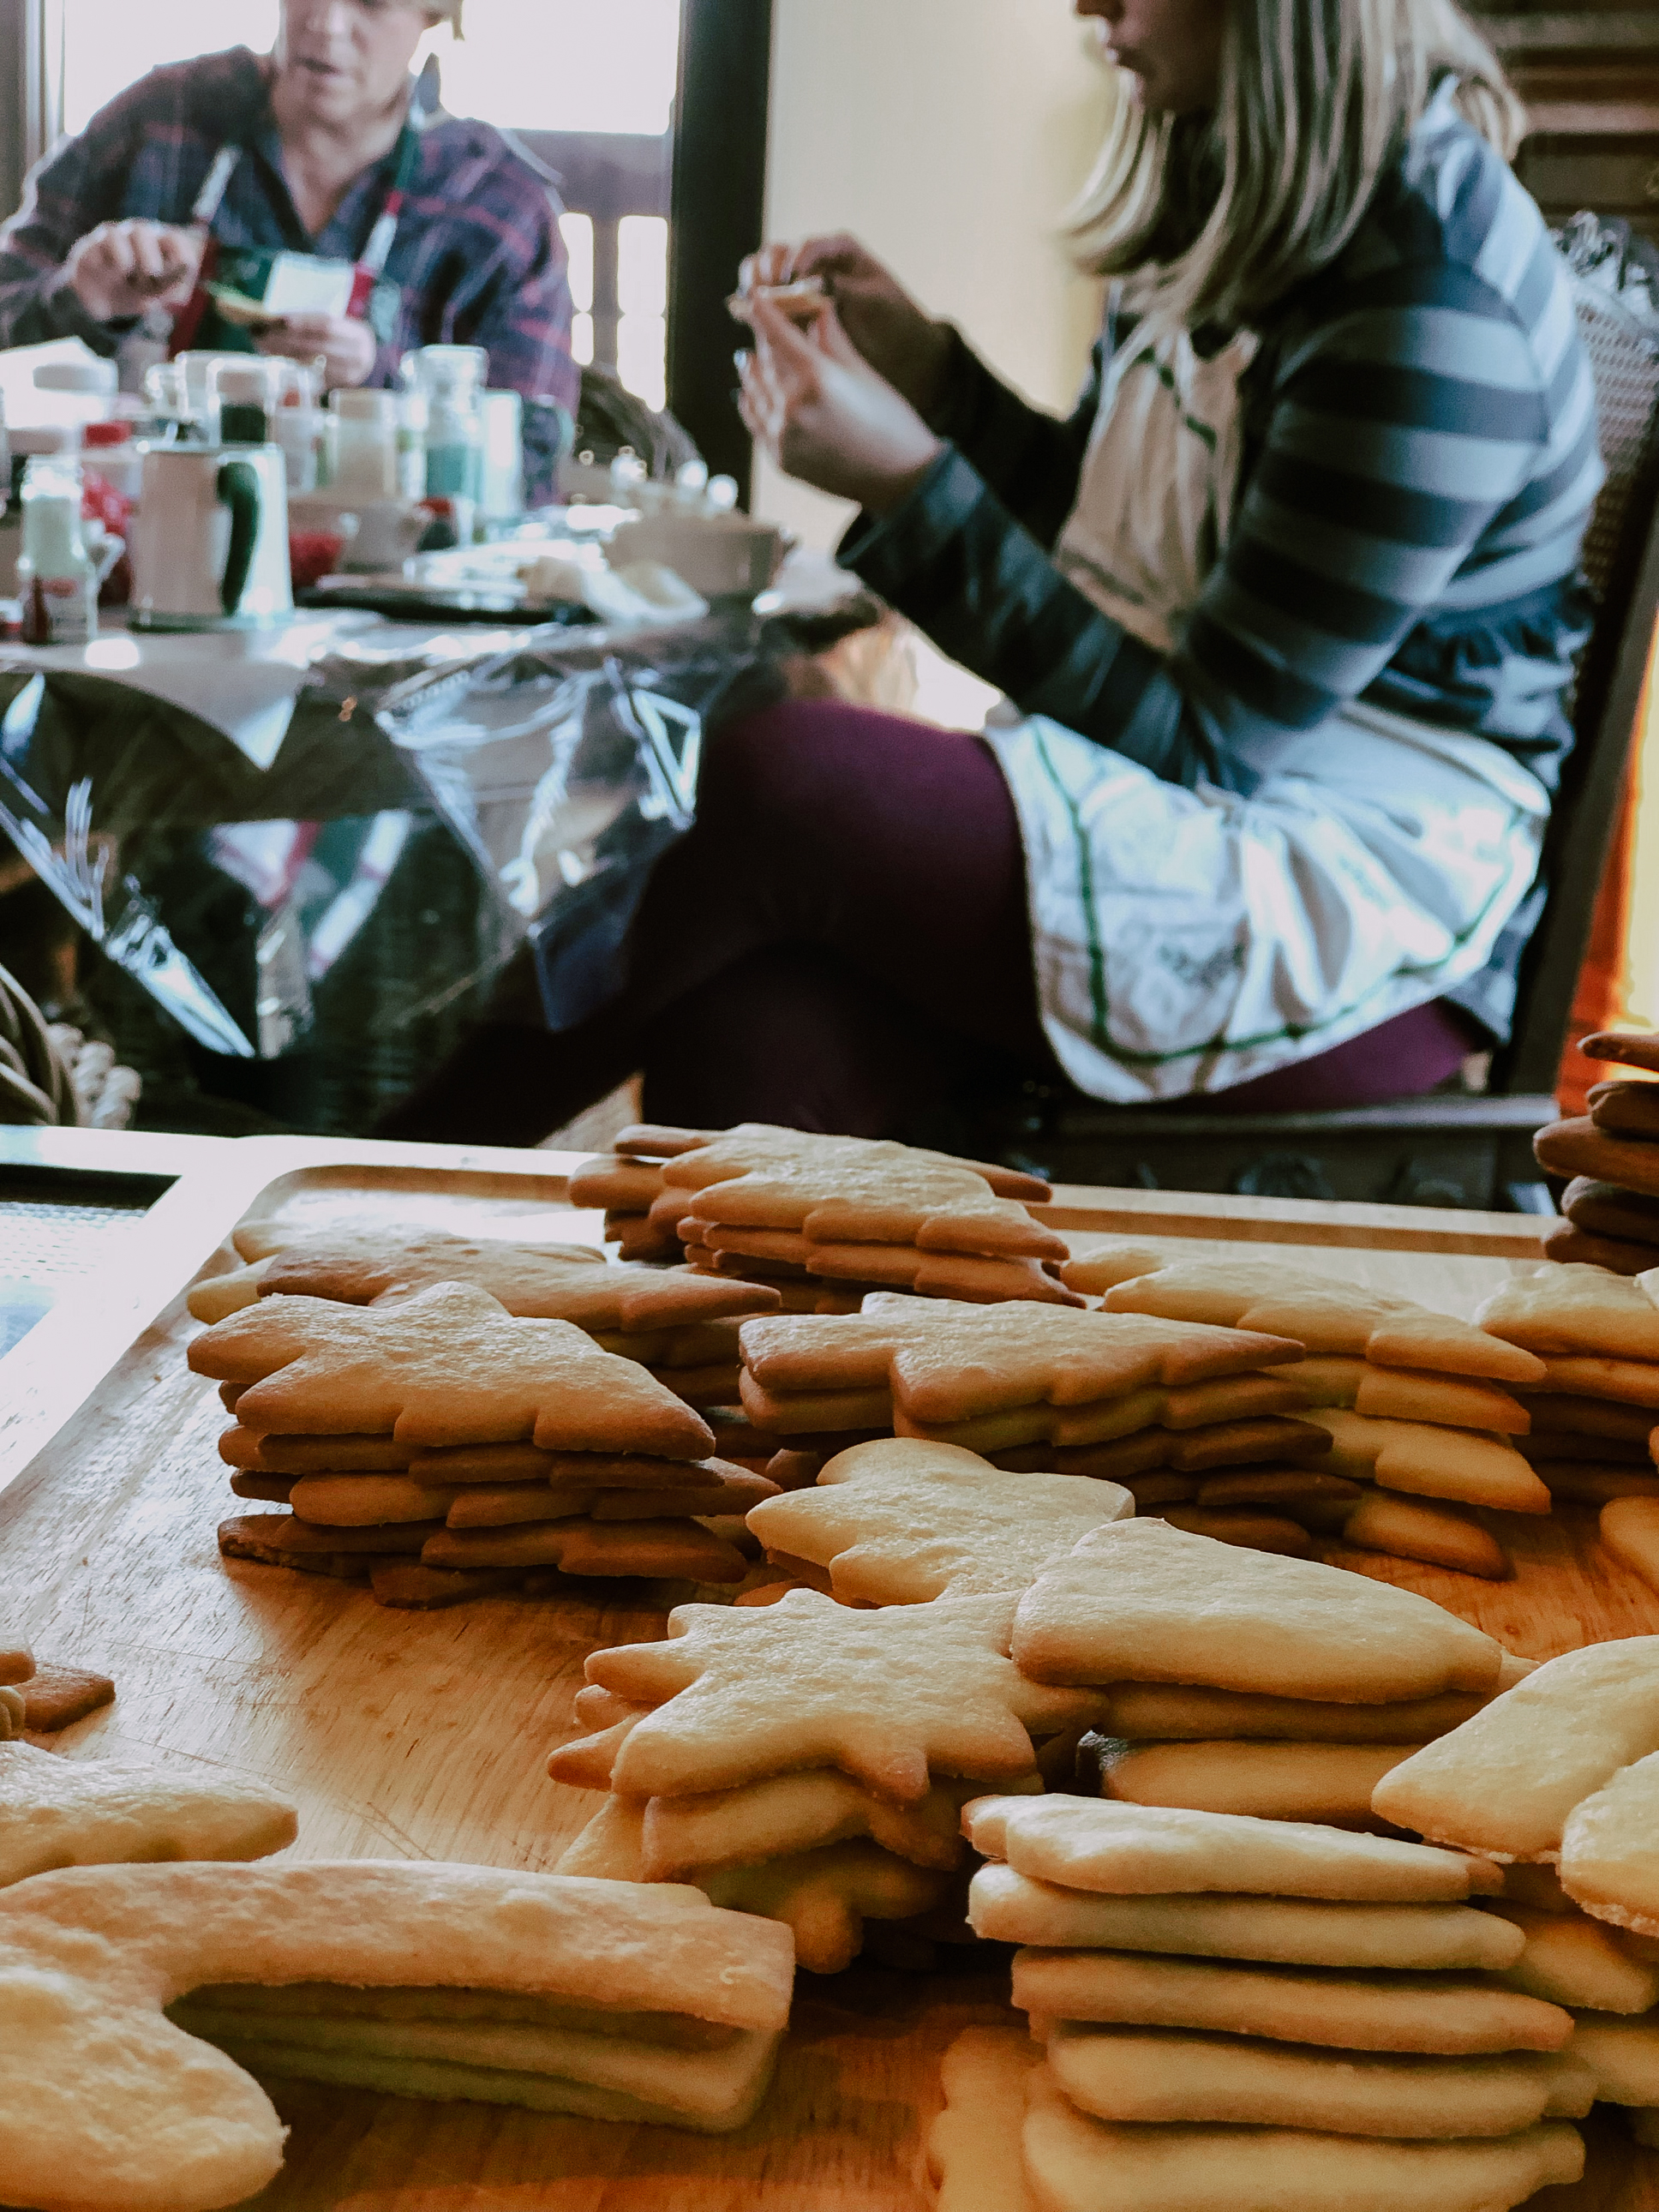 Everyone brings stacks of fresh baked cookies to Decorating Day.